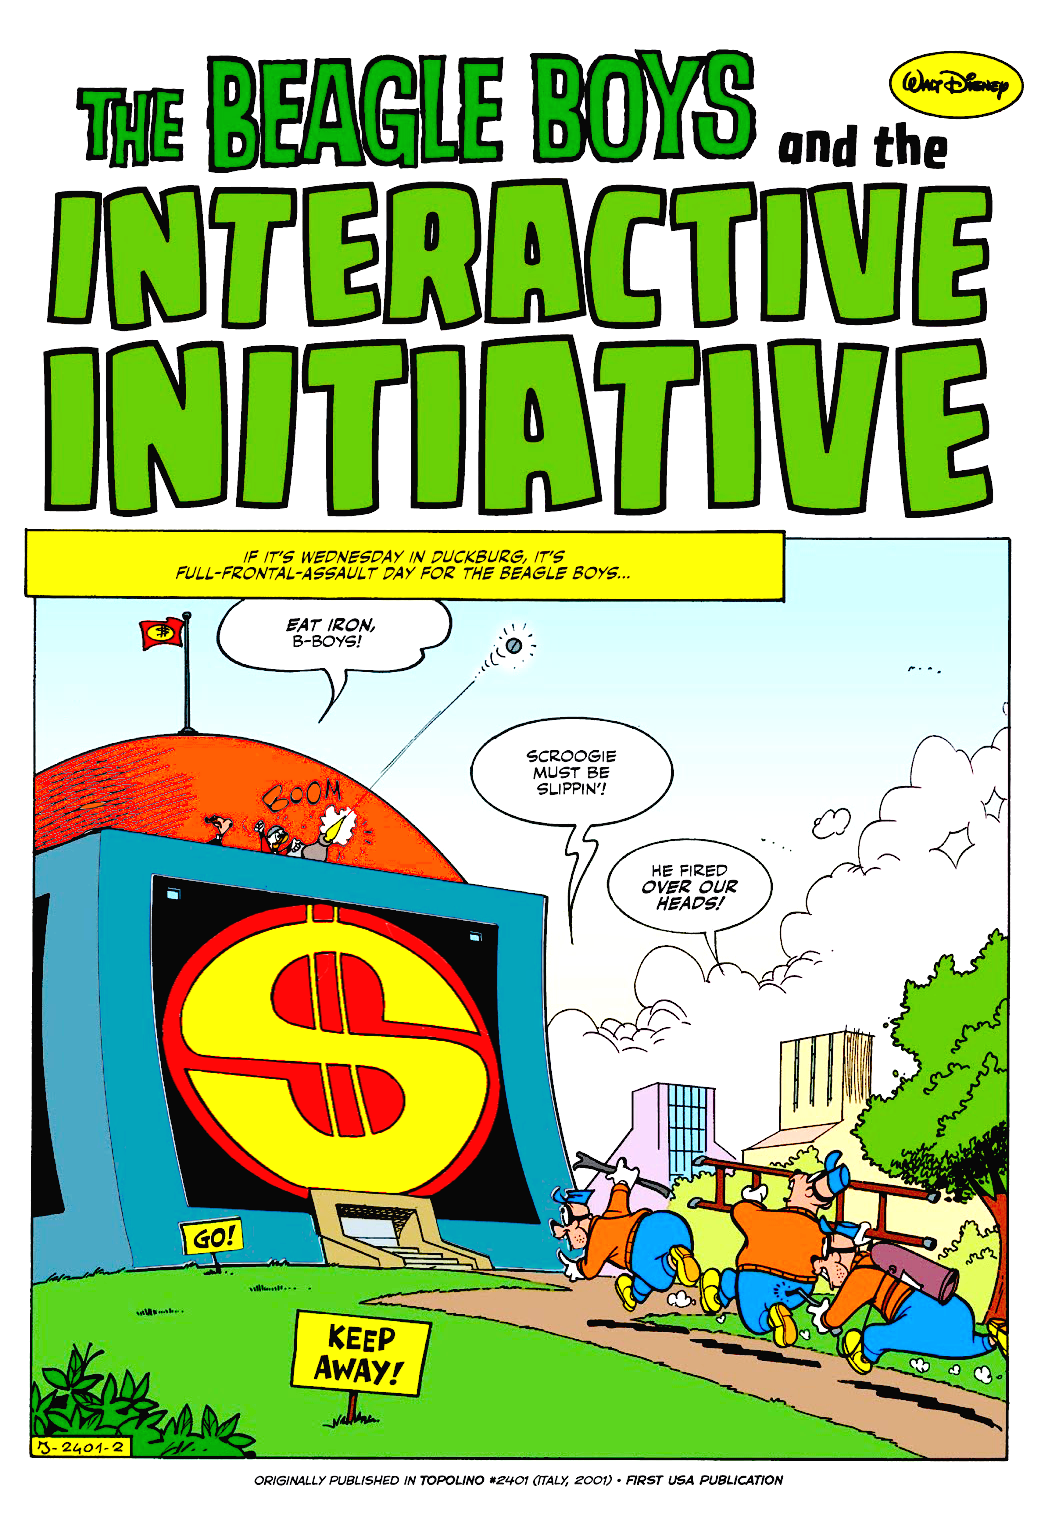 The Beagle Boys and the Interactive Initiative